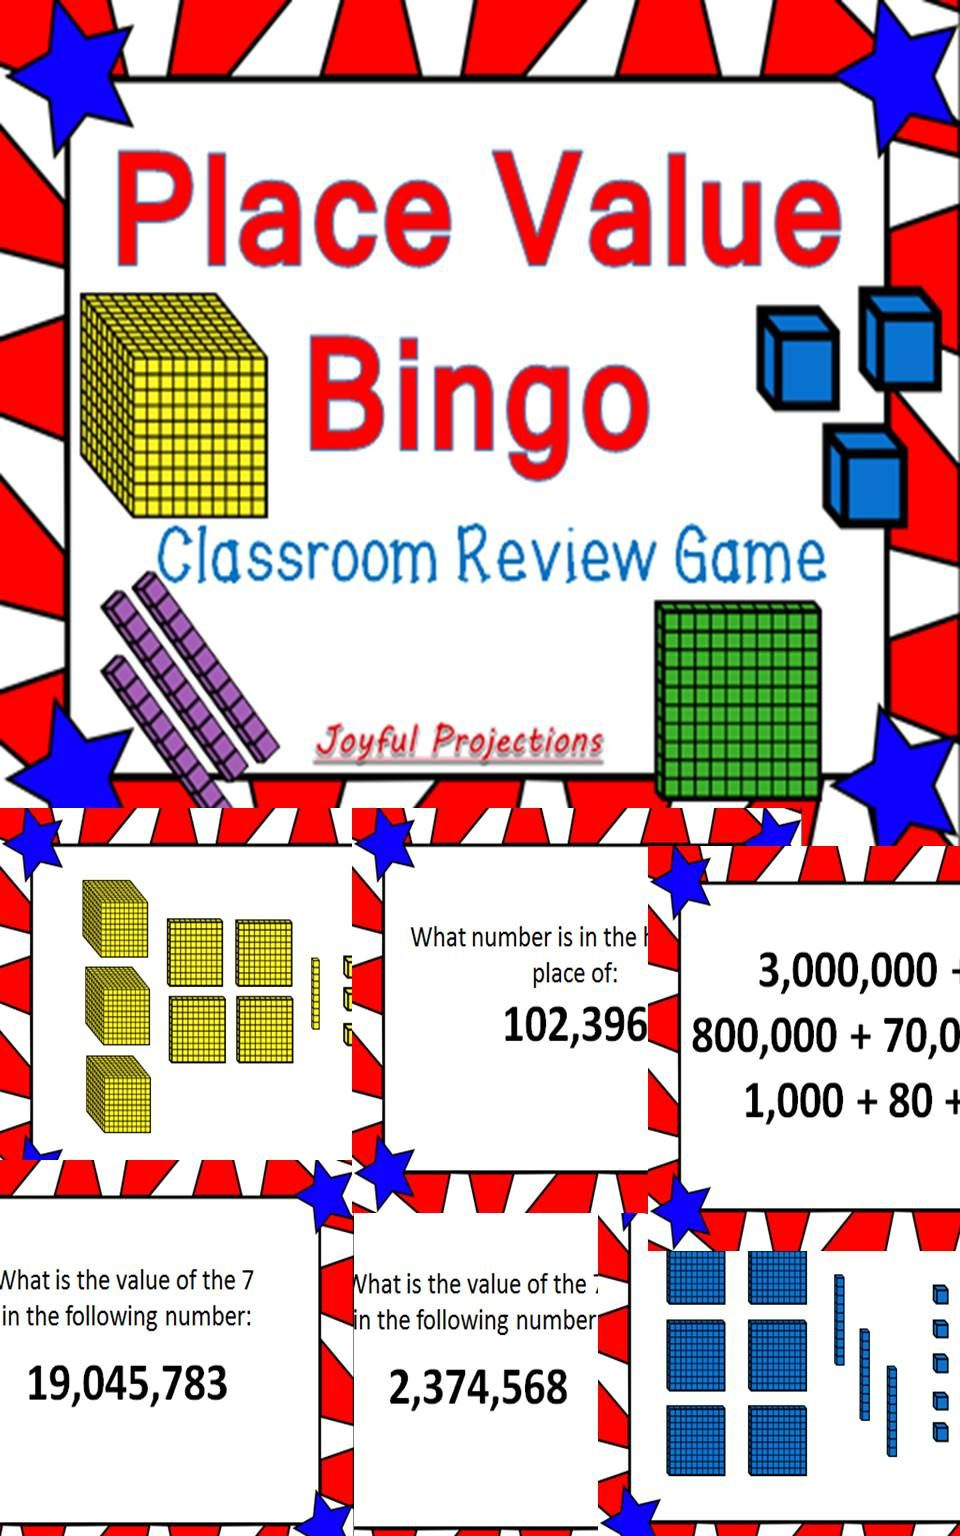 Place Value Bingo Whole Group Review Game | Place Values